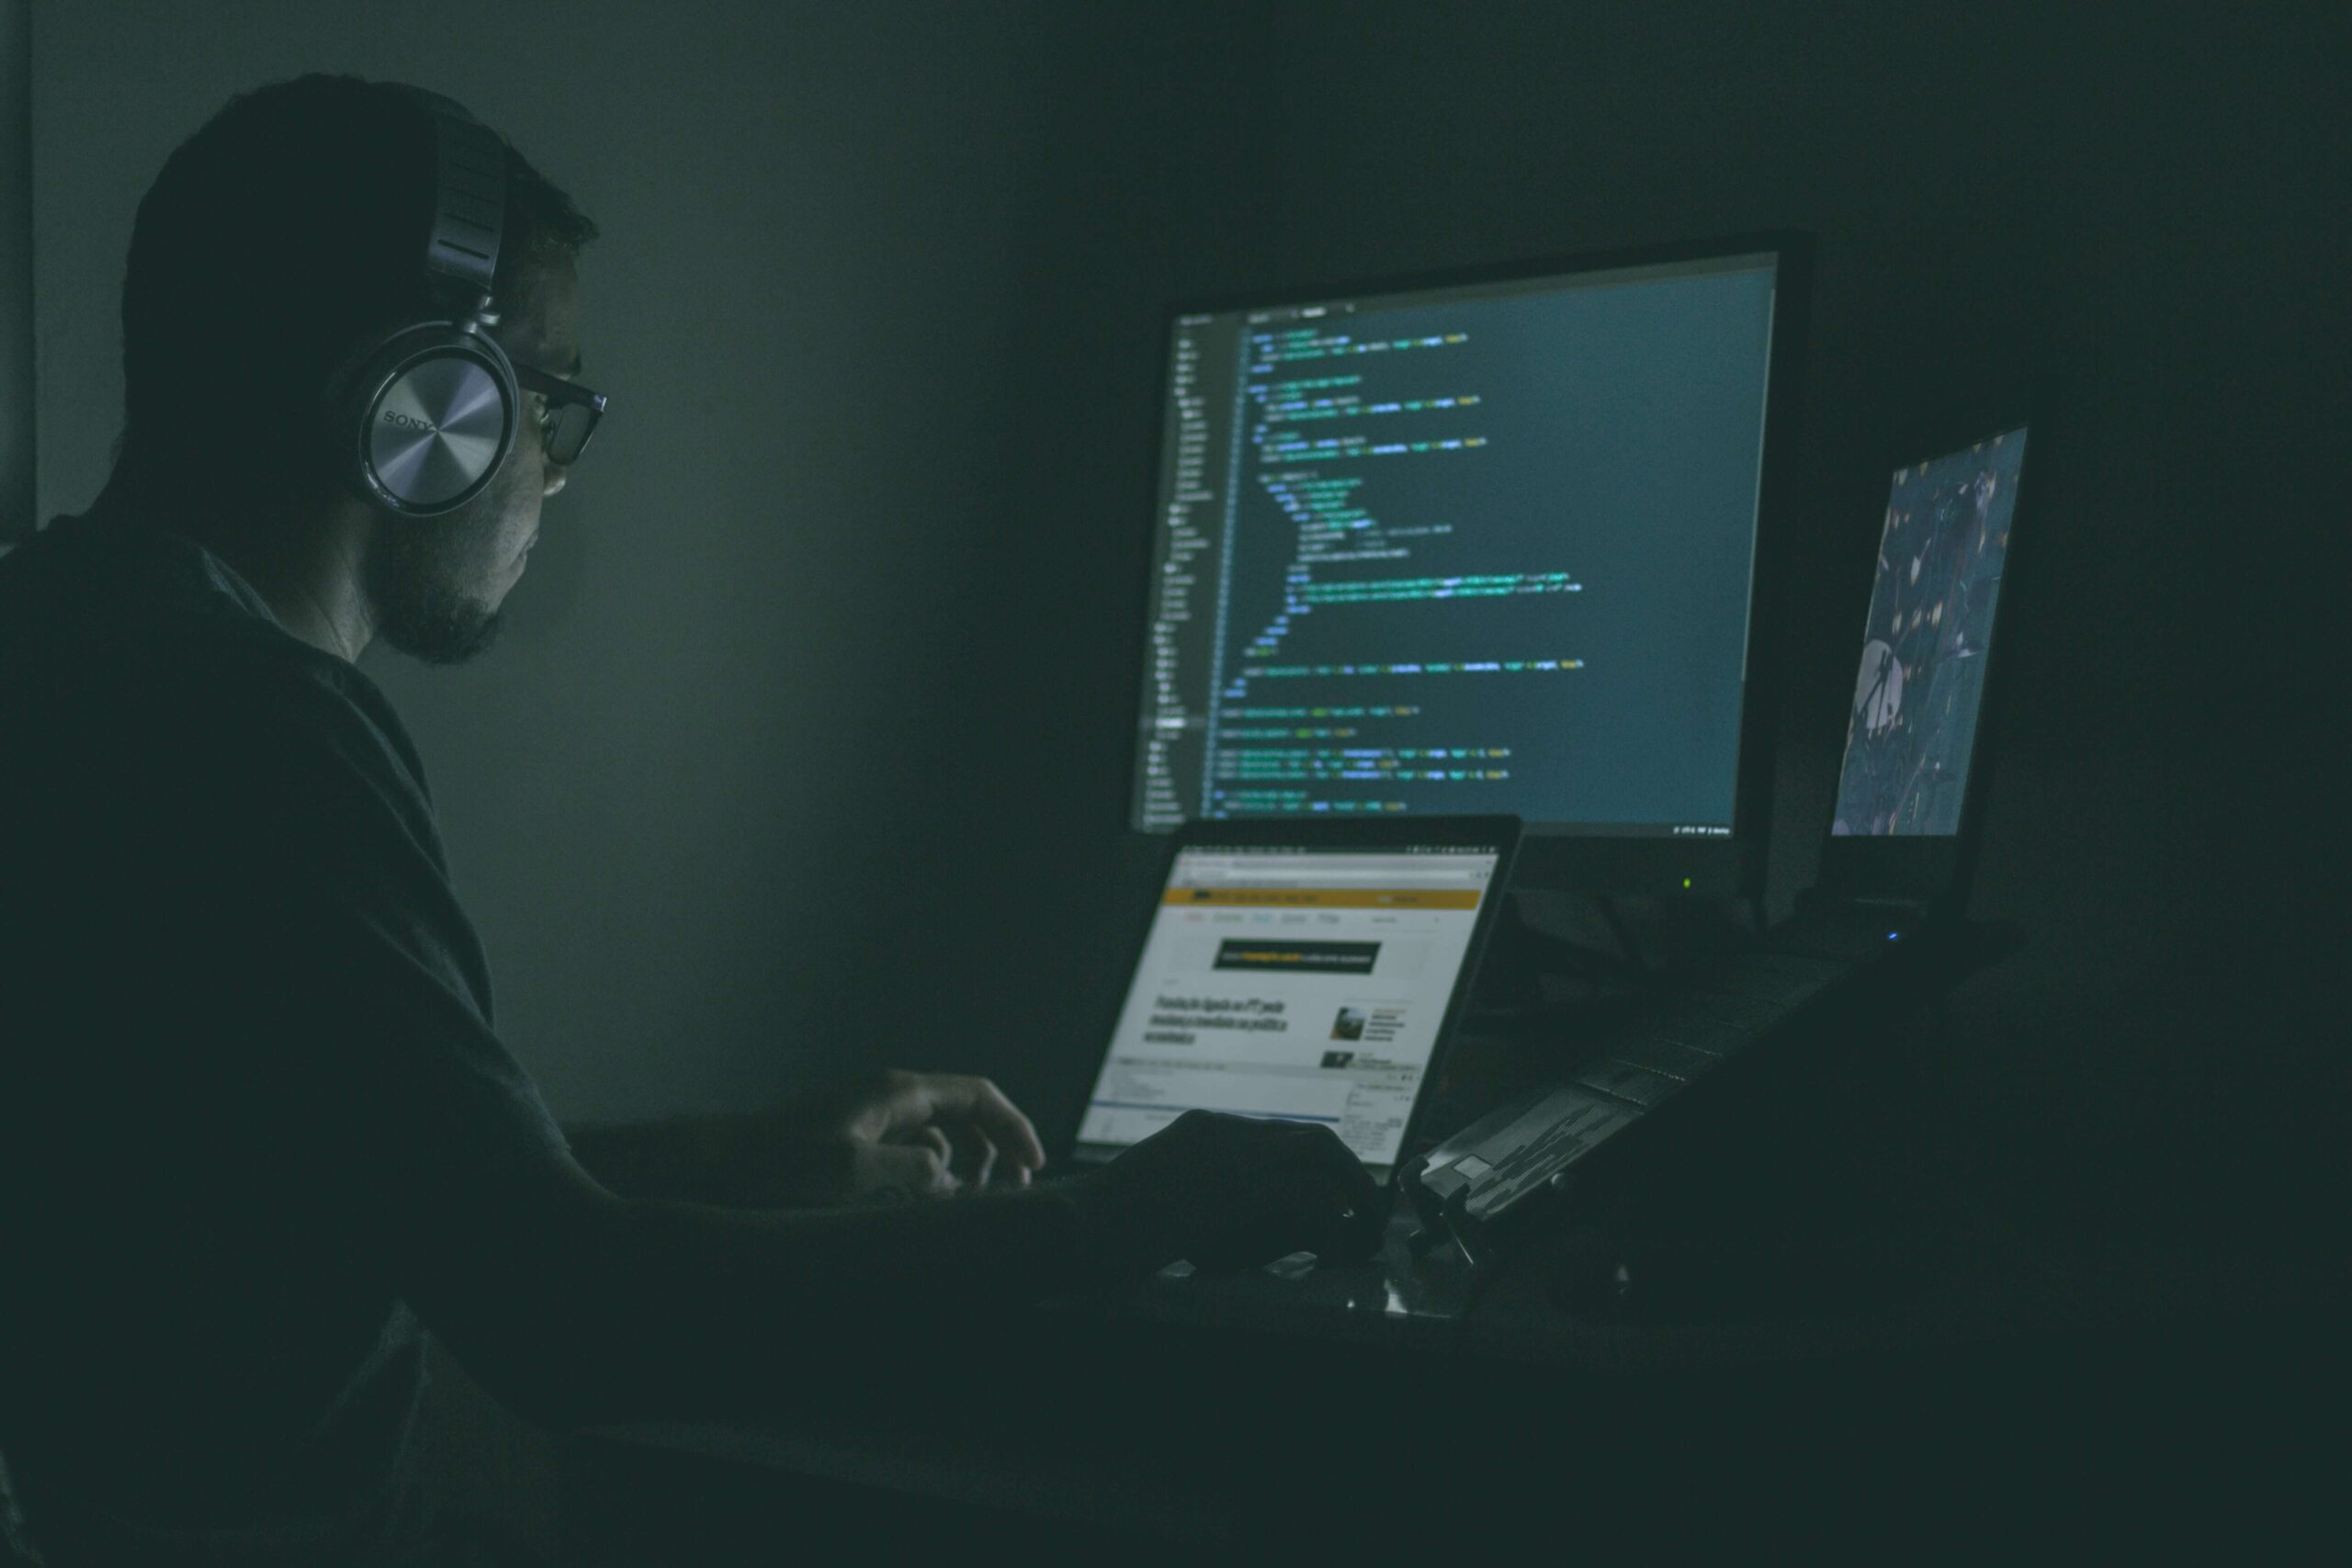 image of a person working on cybersecurity